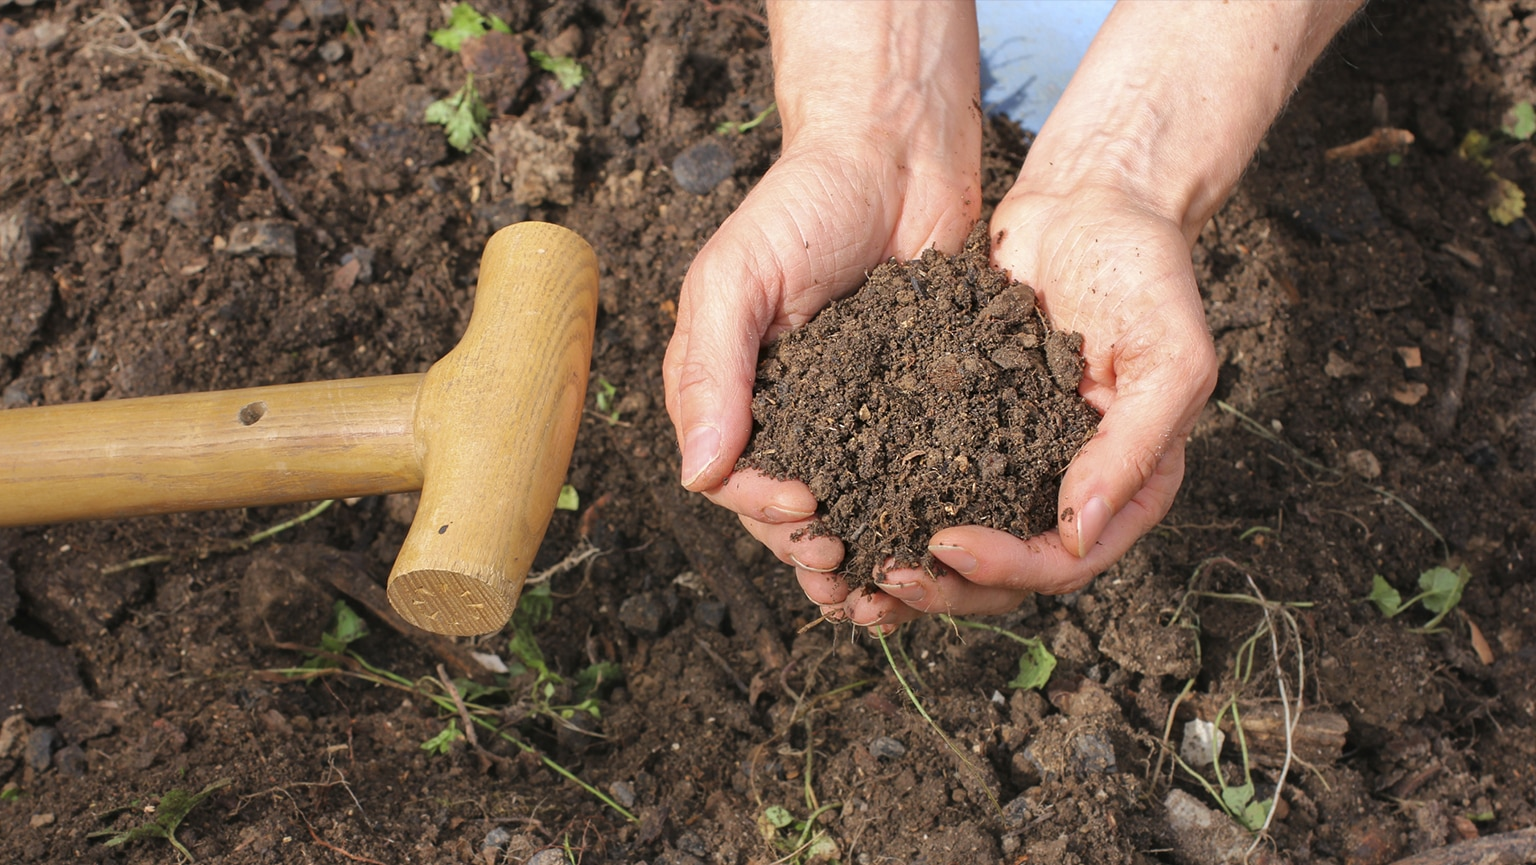 Prepare Healthy Soil and Plant for Spring | The Great Courses Plus